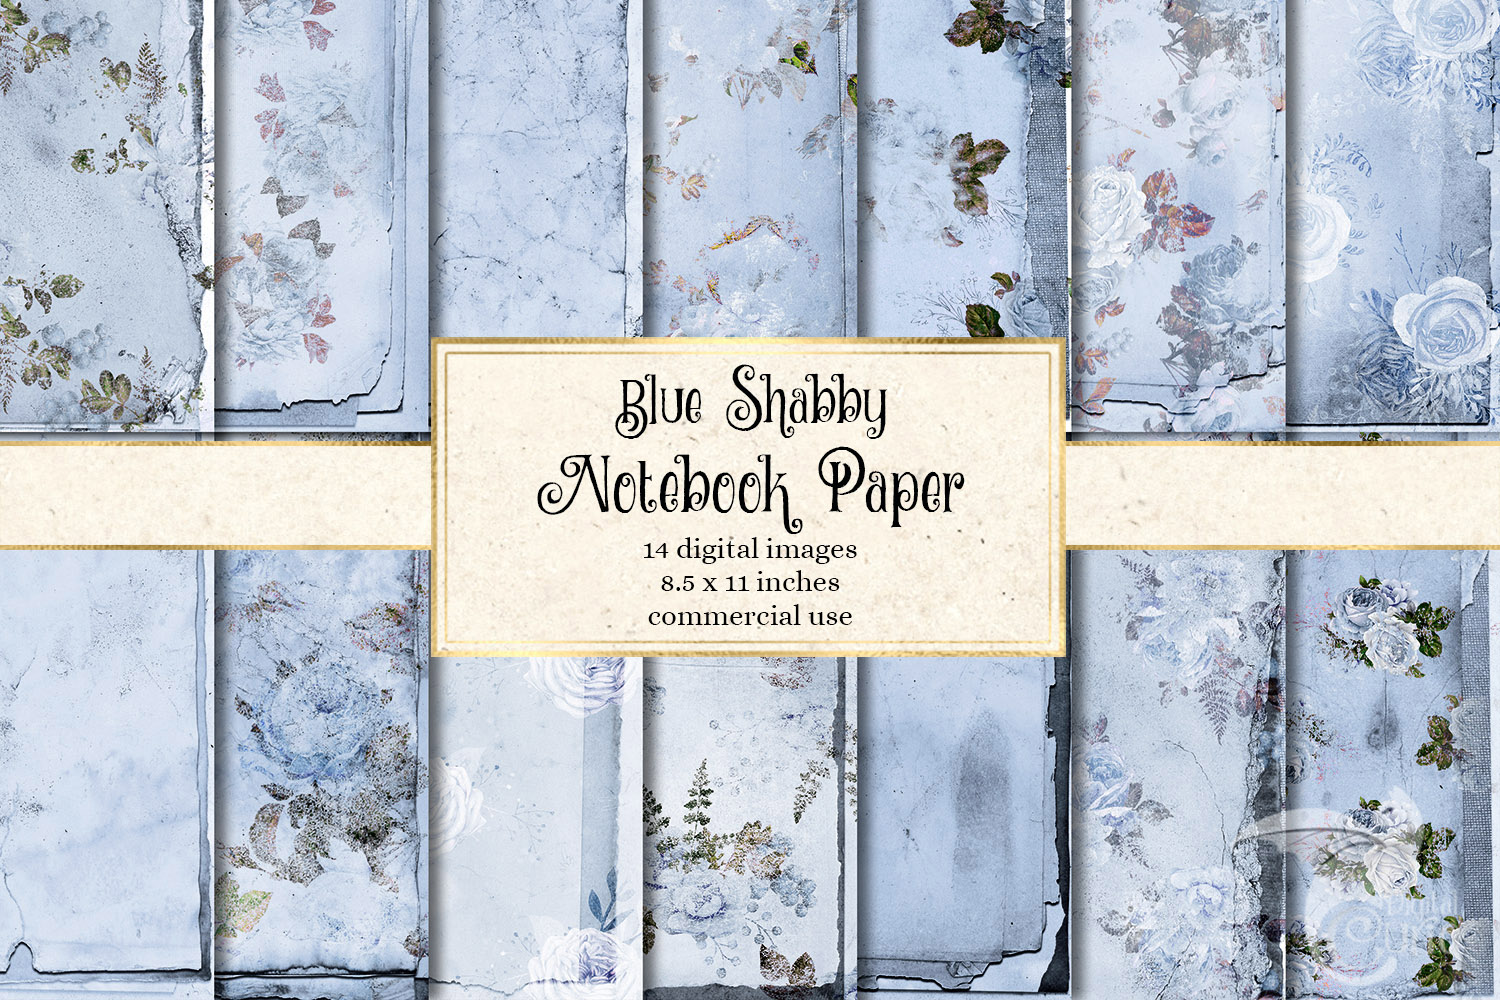 Blue Shabby Notebook Paper example image 1